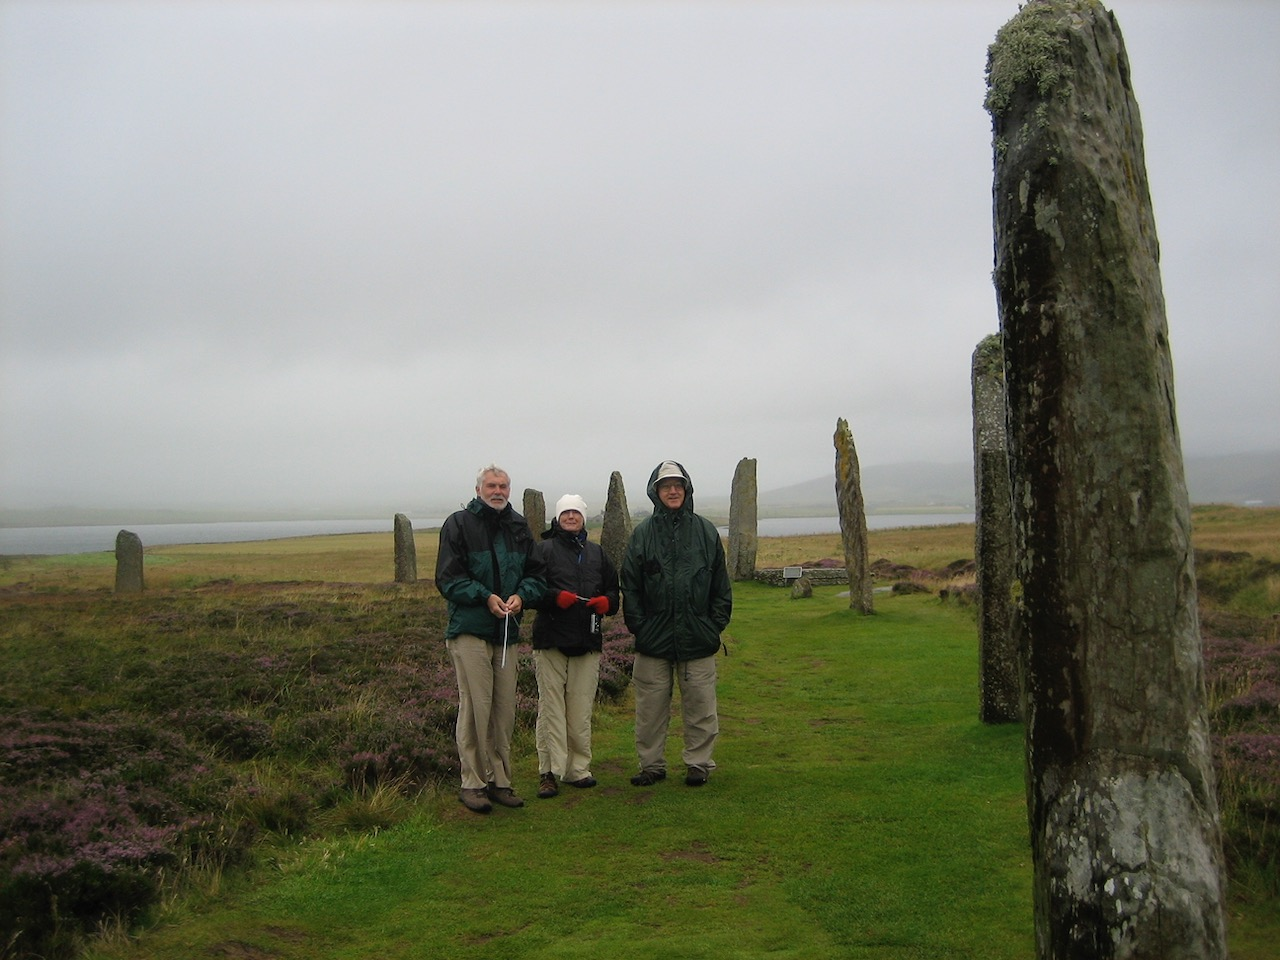 We're back at the Ring of Brognar, now with Ann and Dave, trying to dowse the circle